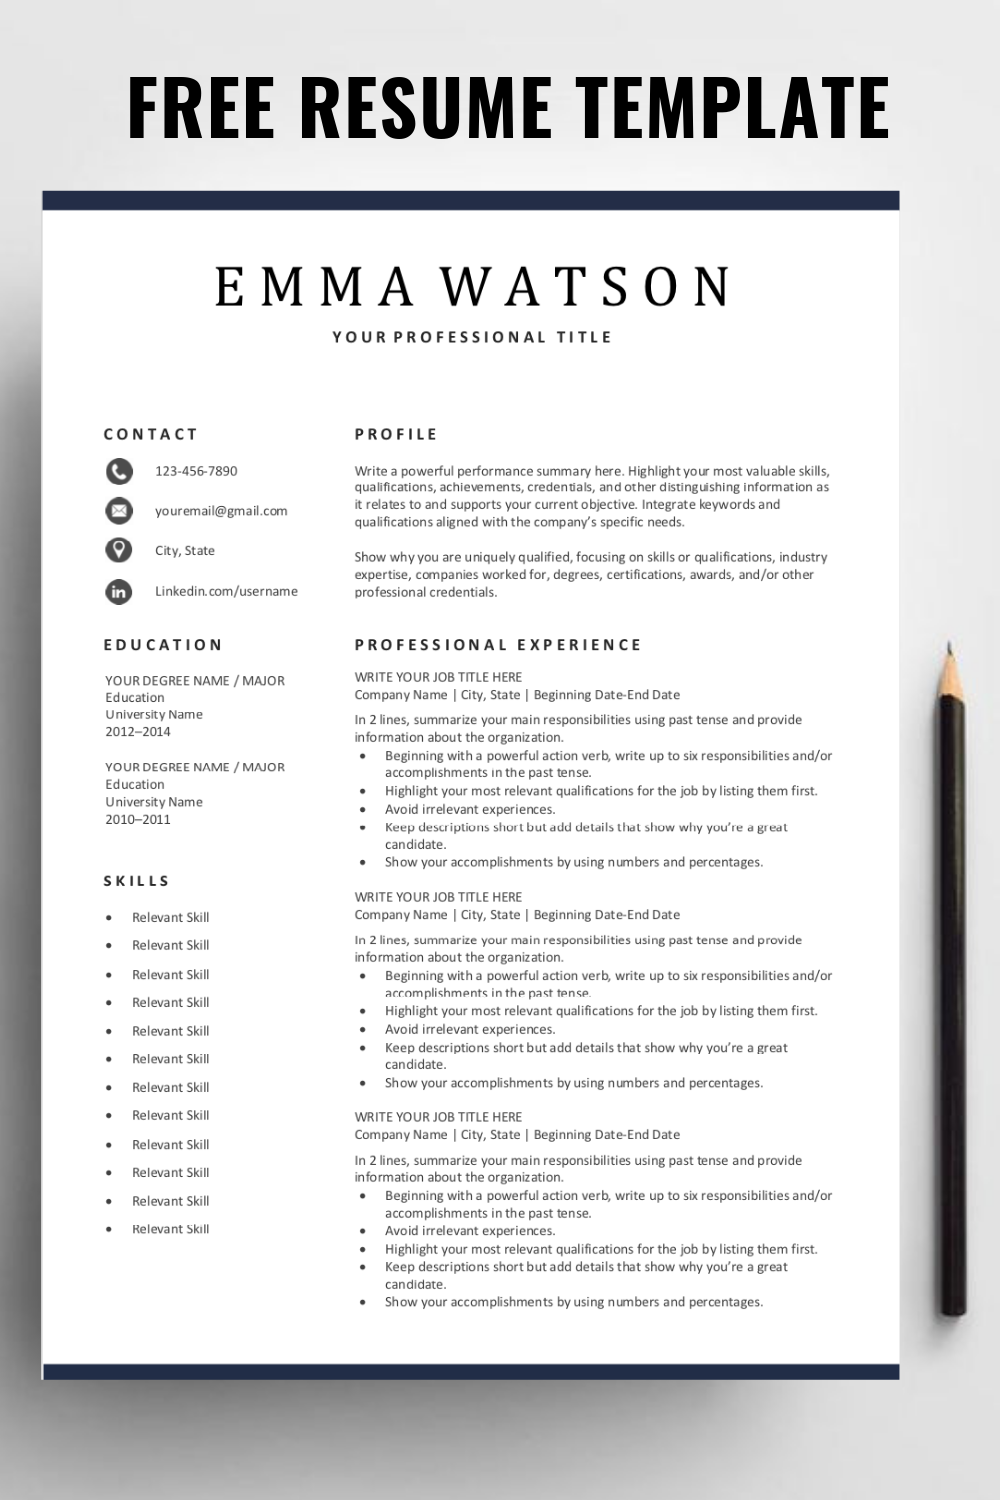 Are You Looking For A Free Editable Resume Template Sign Up For Our Job Search Tips And Down Resume Template Simple Resume Template Free Resume Template Word